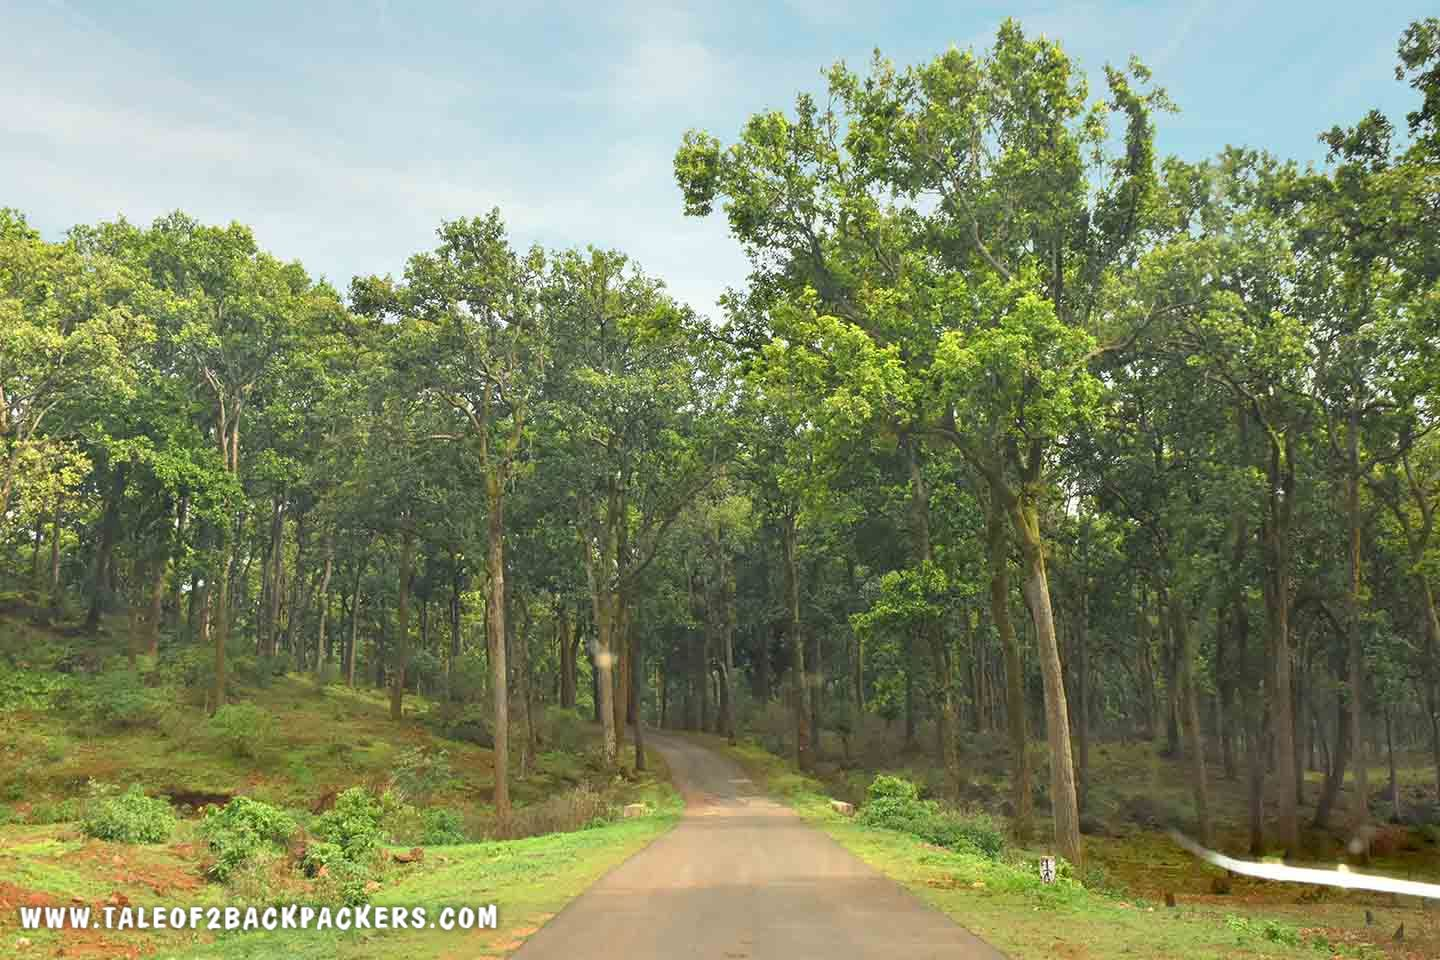 Road towards Mainpat - Chhatisgarh Tourism